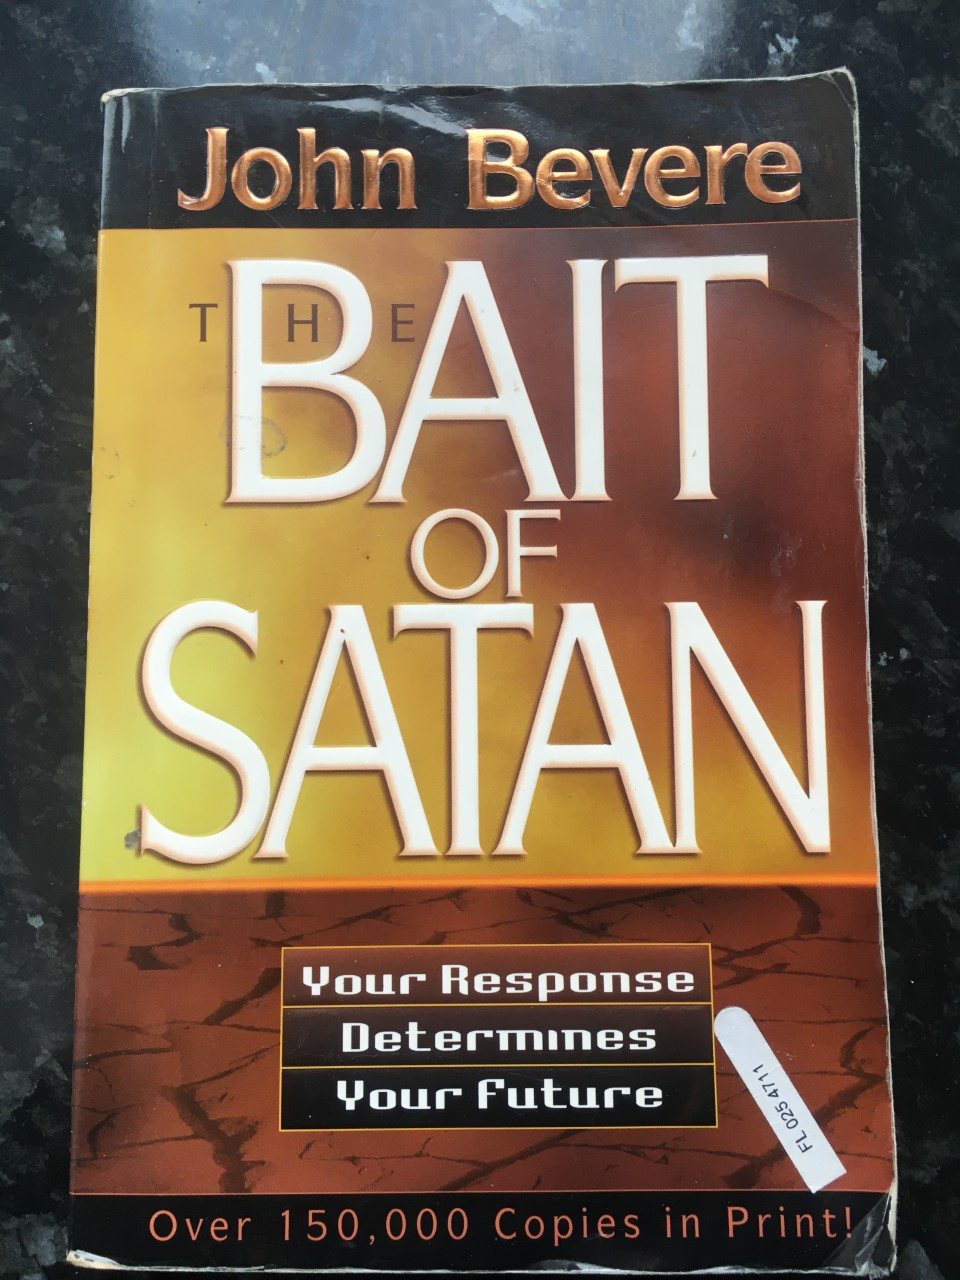 How to evangelise suggested reading John Bevere